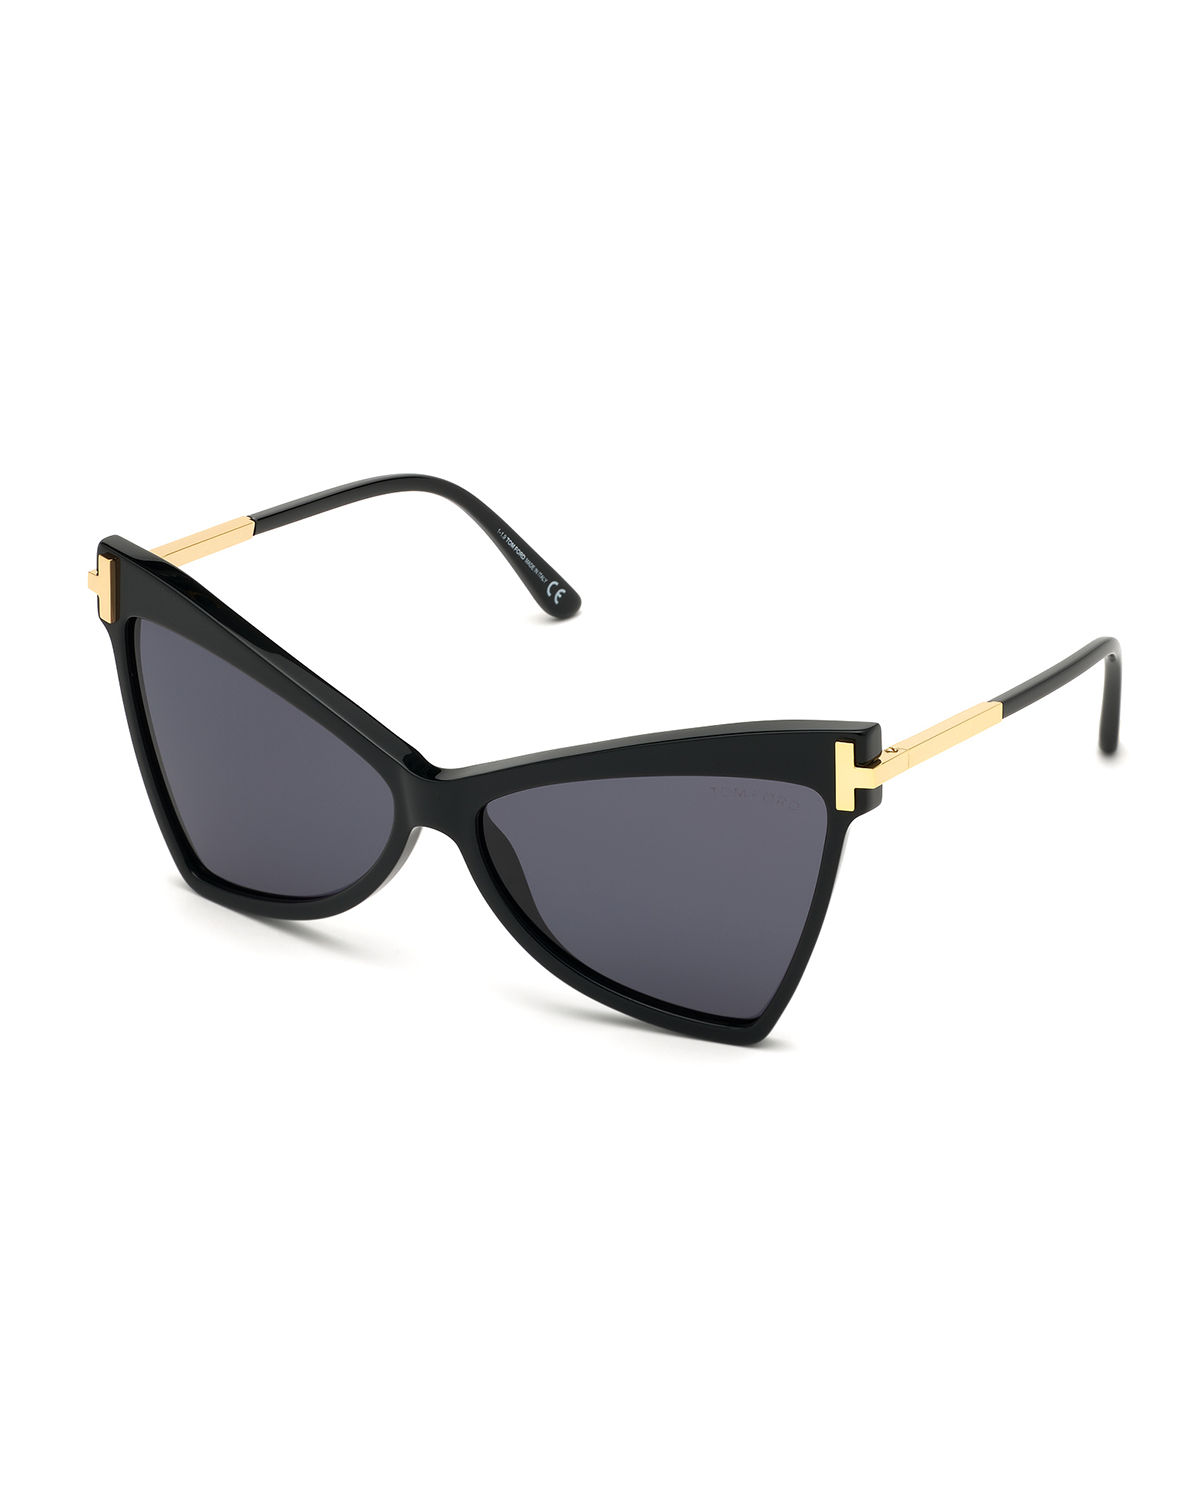 Tom Ford Tallulah Acetate Butterfly Sunglasses W/ Oversized T Temples In Black/Smoke